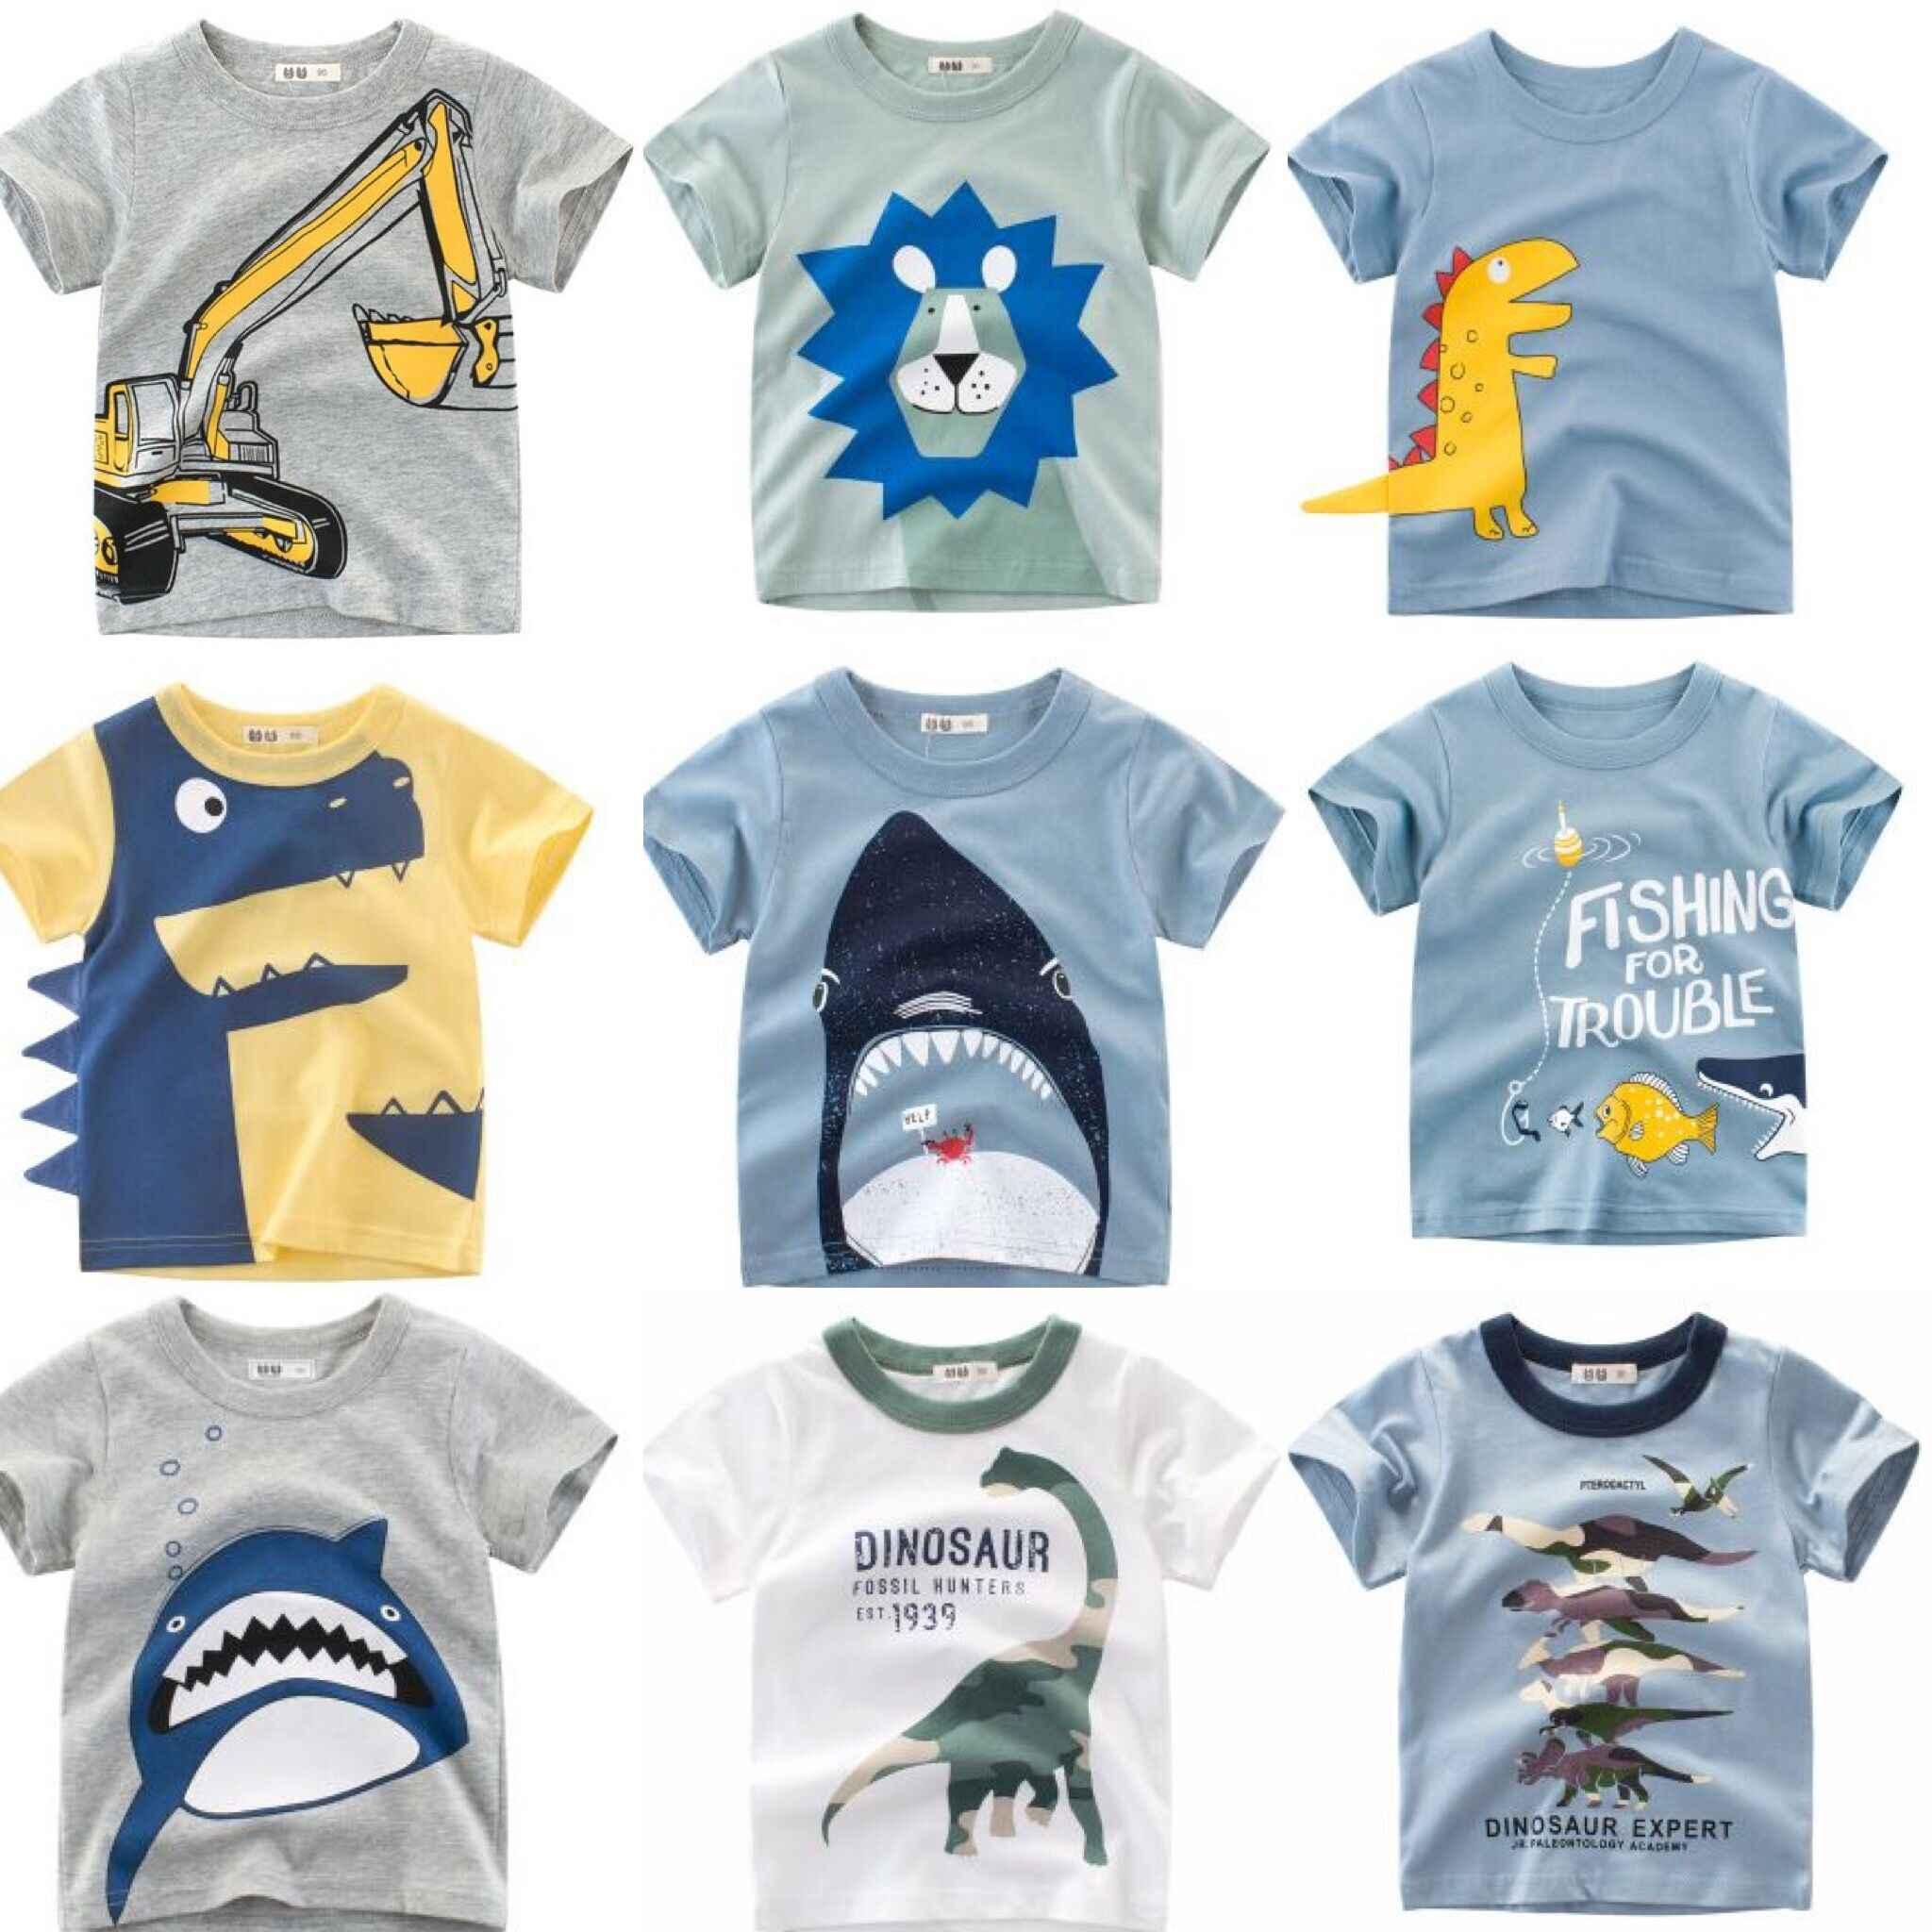 Kids Boys T-shirt New Summer Design Baby Cotton Tops Summer Clothing Toddler Fashion T-shirt Cute Children Play Clothes 2-7Y